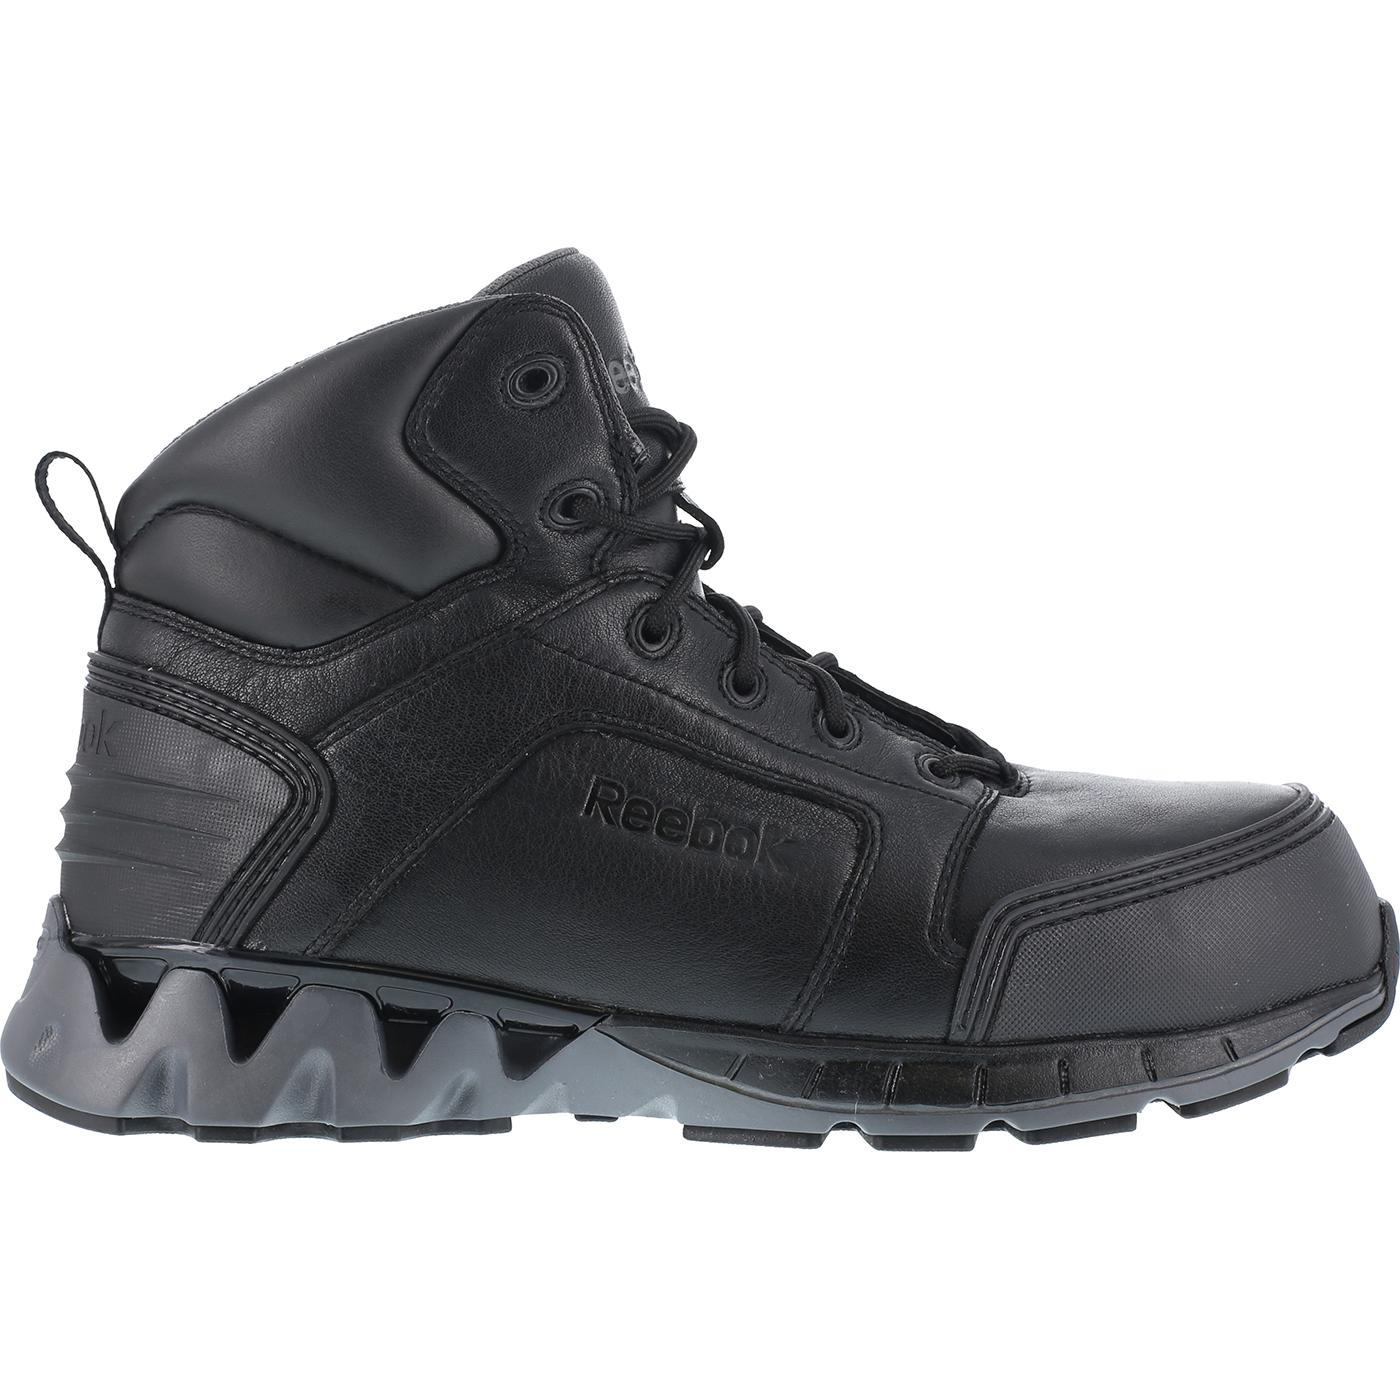 65cd1ad4643cc0 Reebok Zigkick Work Composite Toe Work BootReebok Zigkick Work Composite  Toe Work Boot